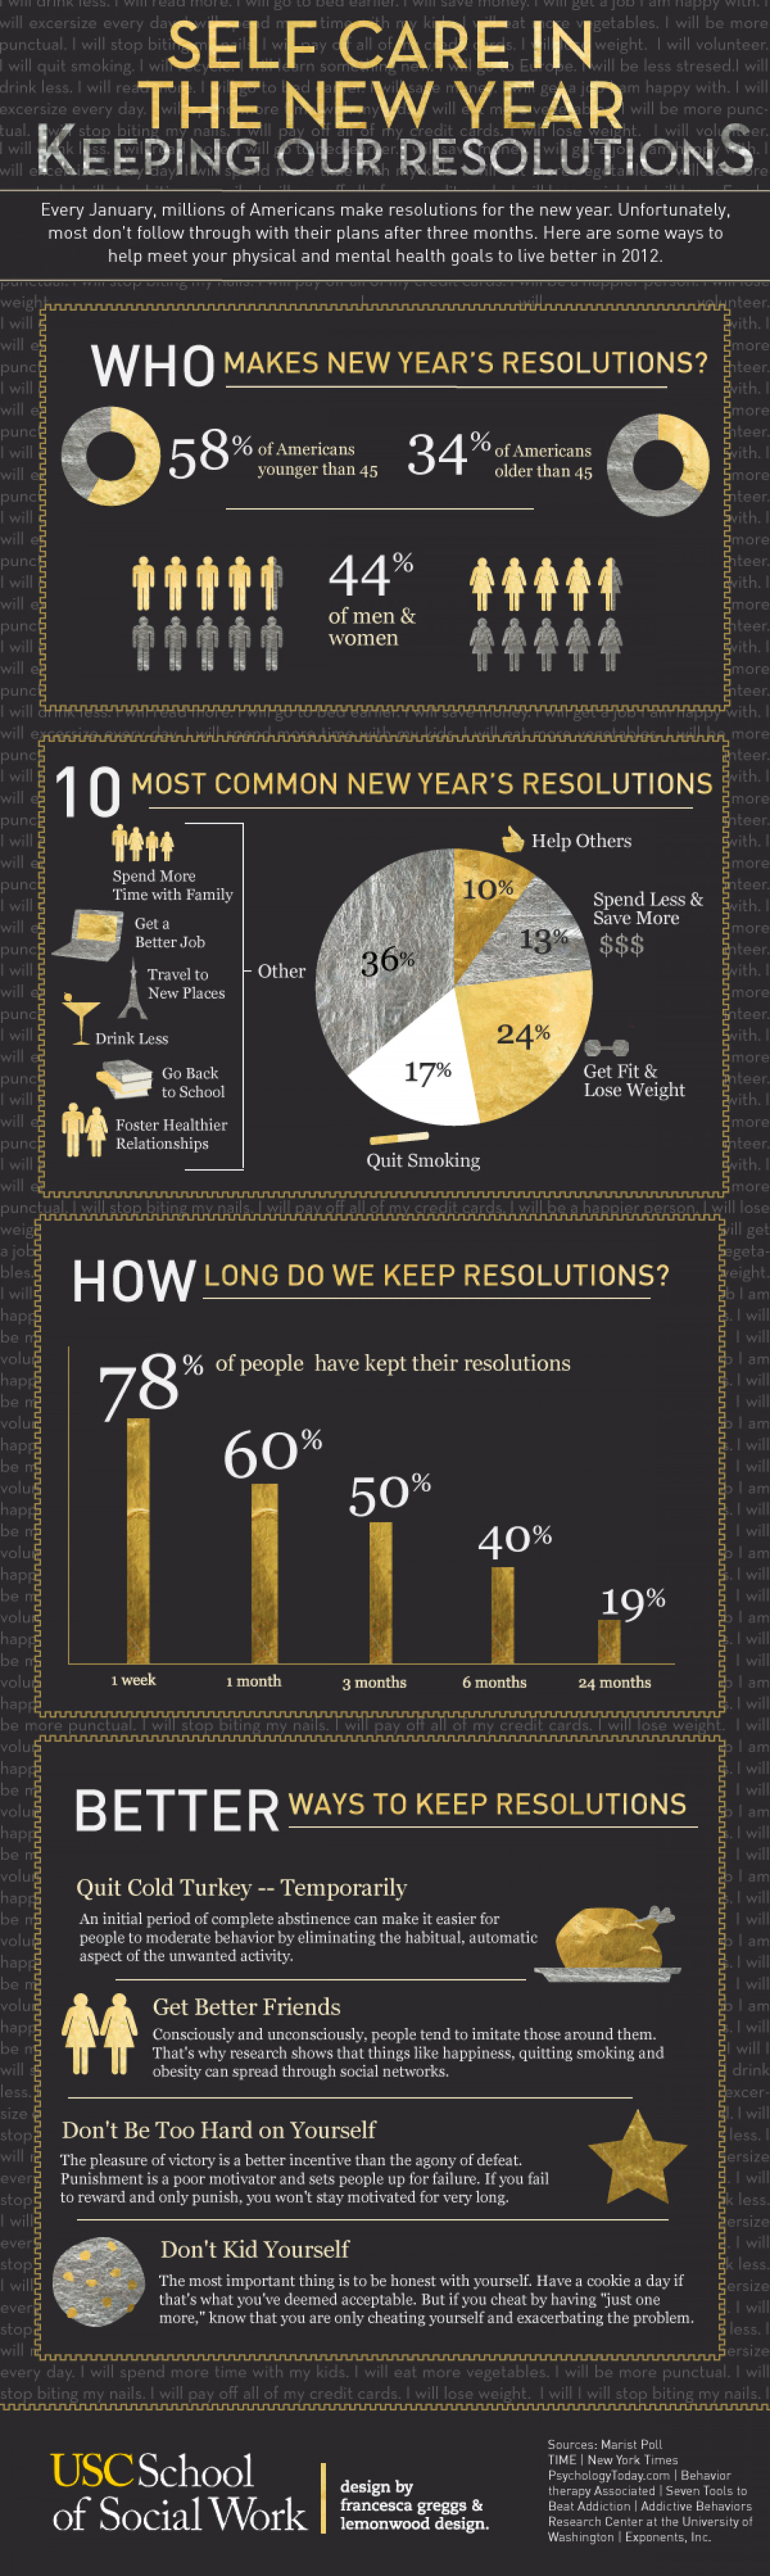 Self Care in the New Year: Keeping Our Resolutions Infographic